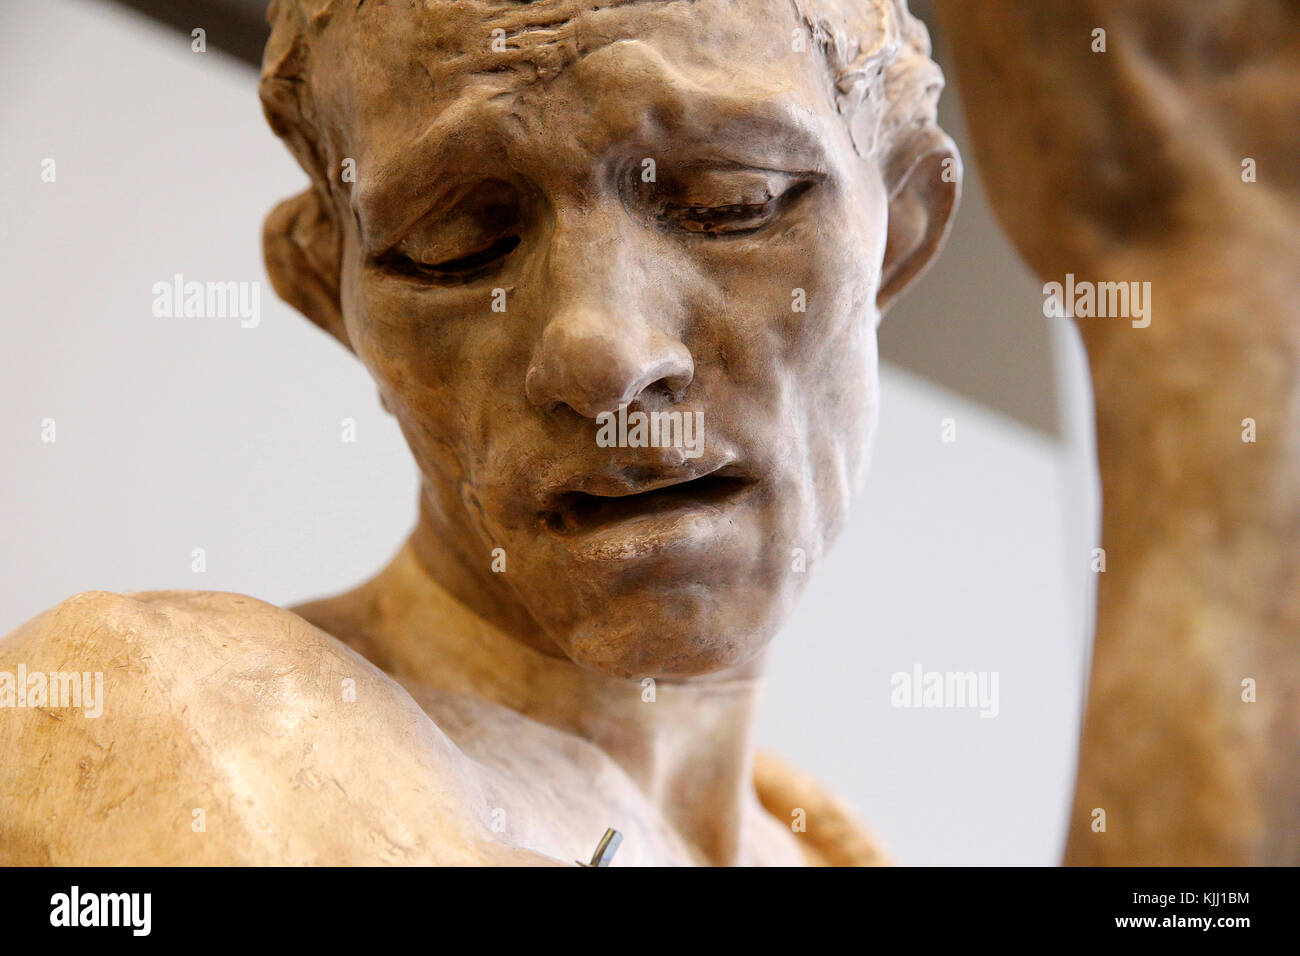 Rodin museum, Paris. Monumental Pierre de Wissant, clothed, also known as The Passerby or A Burgher Offering Himself. - Stock Image